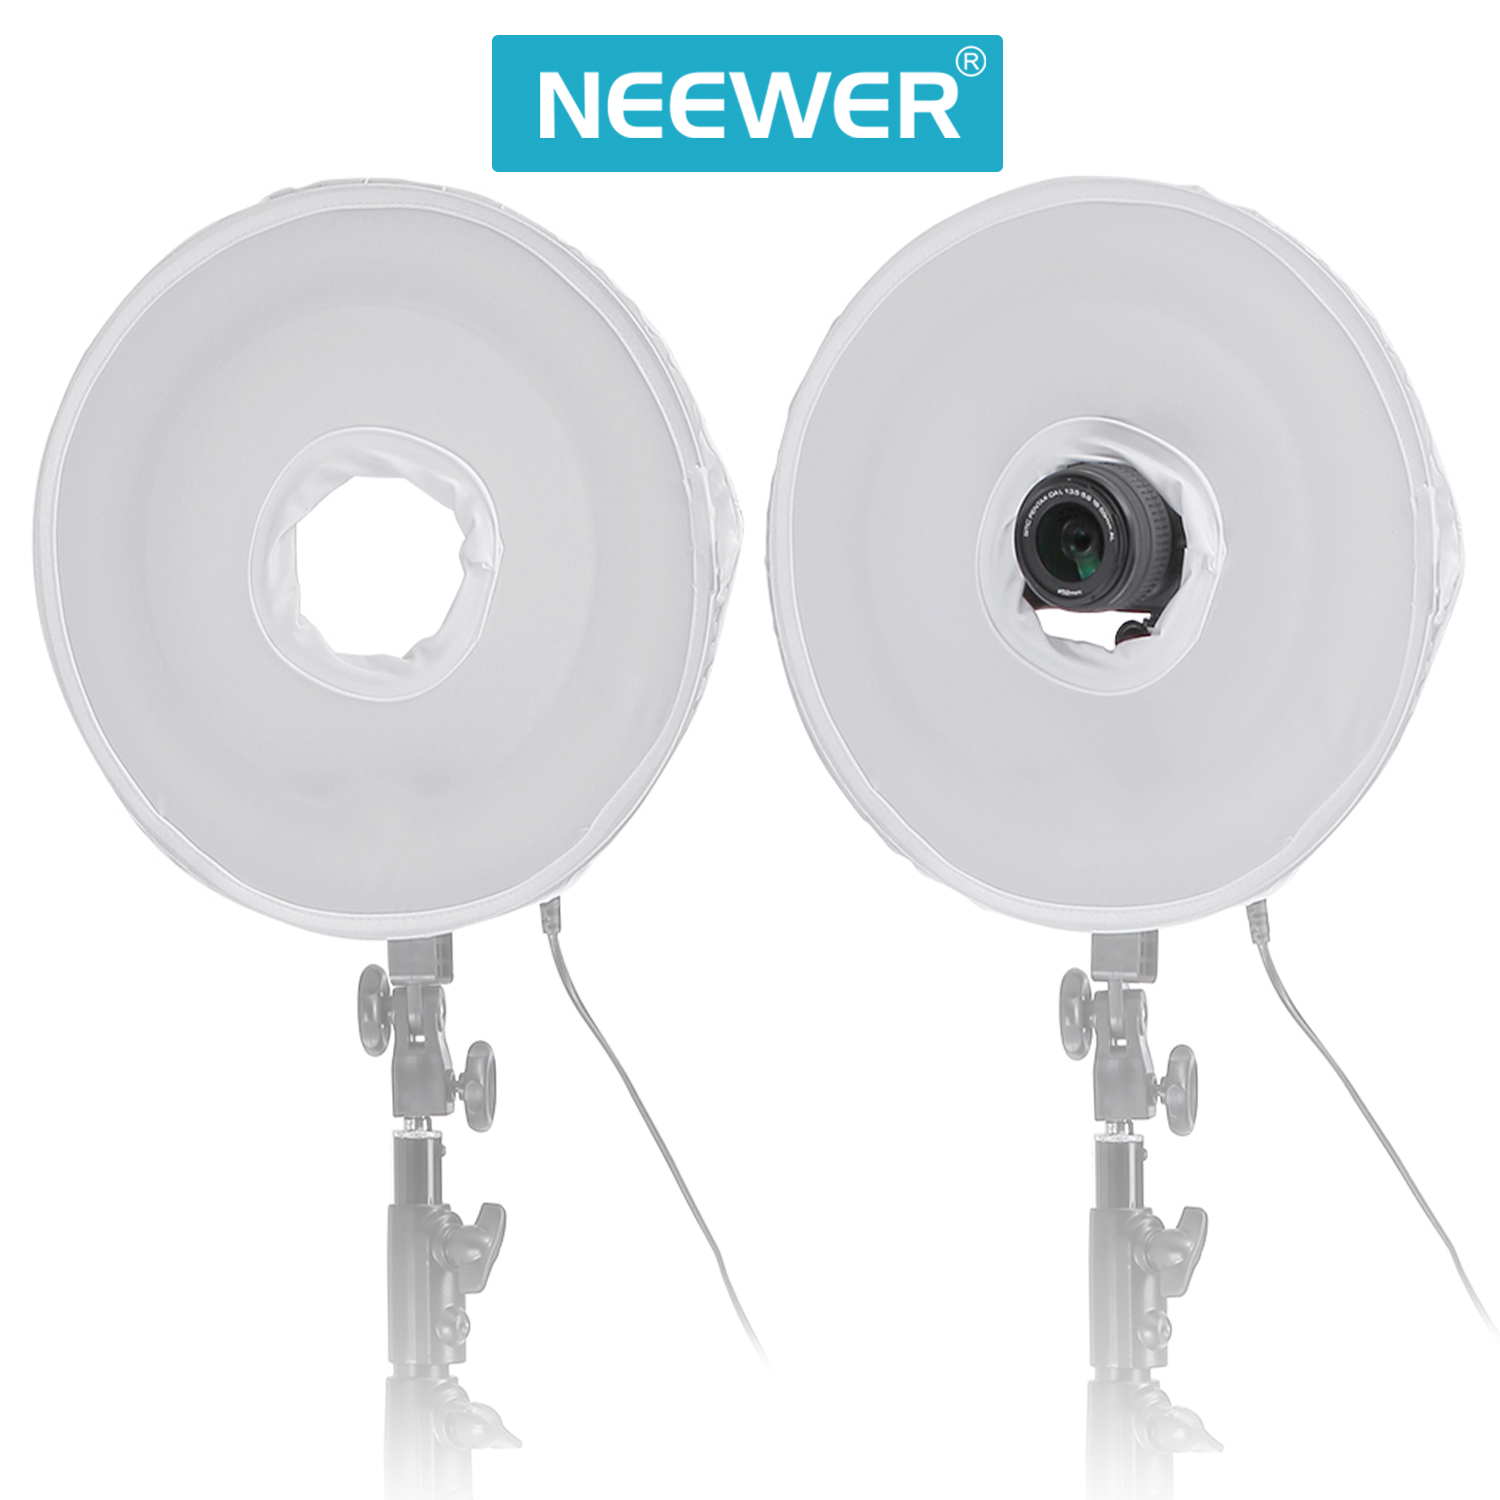 Studio Lighting Diffuser: 45cm 18inch Collapsible Photography Video Light Softbox